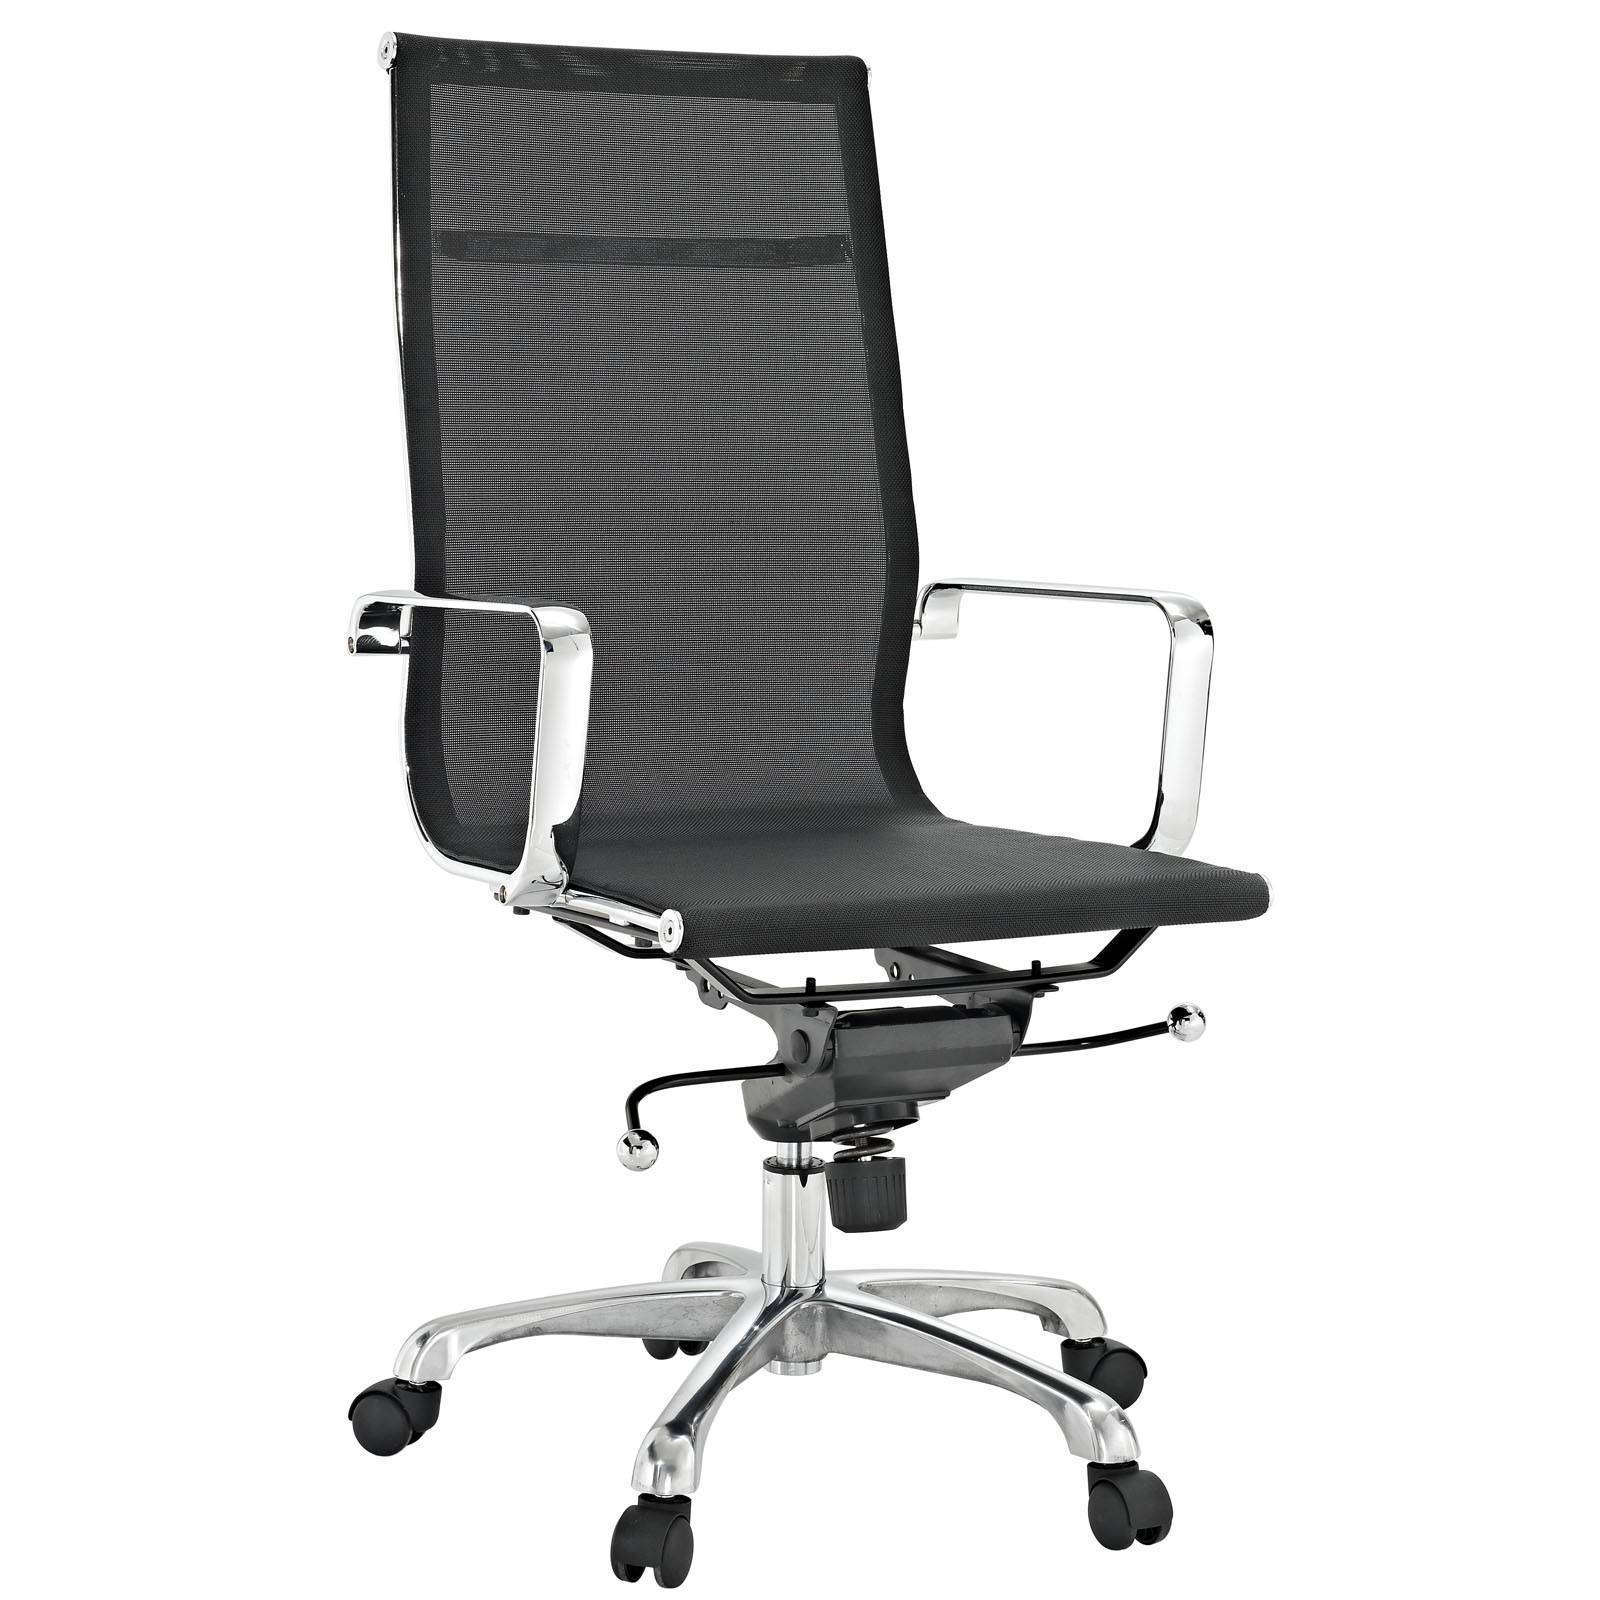 Classic Slider Mesh High Back fice Chair